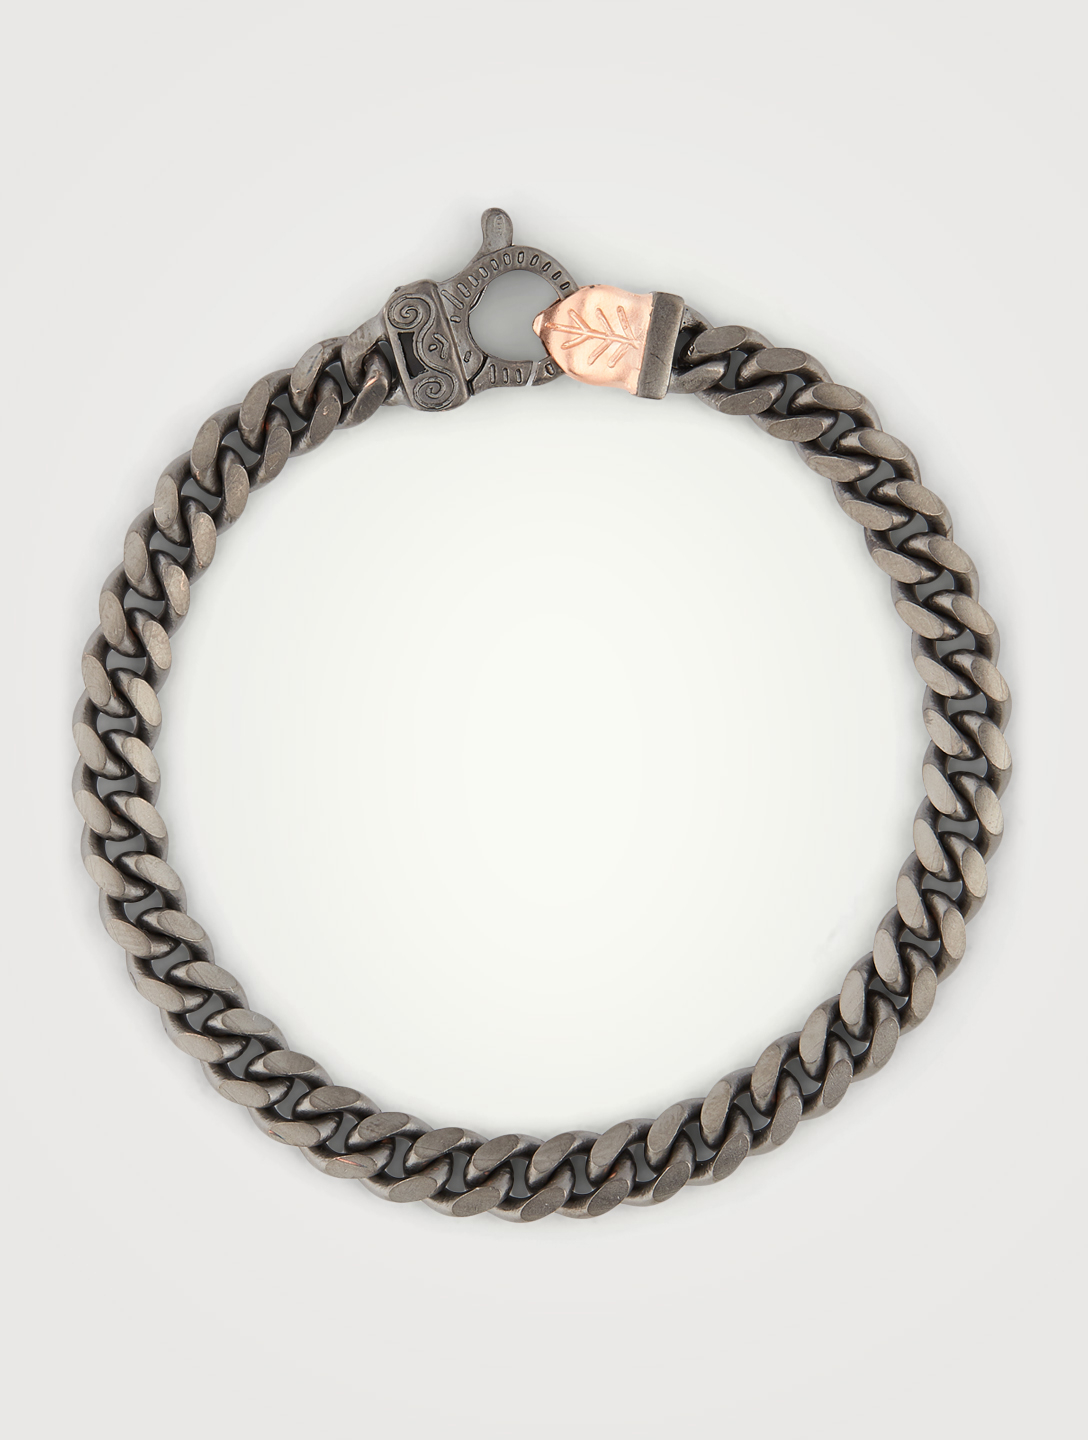 MARCO DAL MASO Flaming Tongue Silver Cuban Link Bracelet Men's Metallic